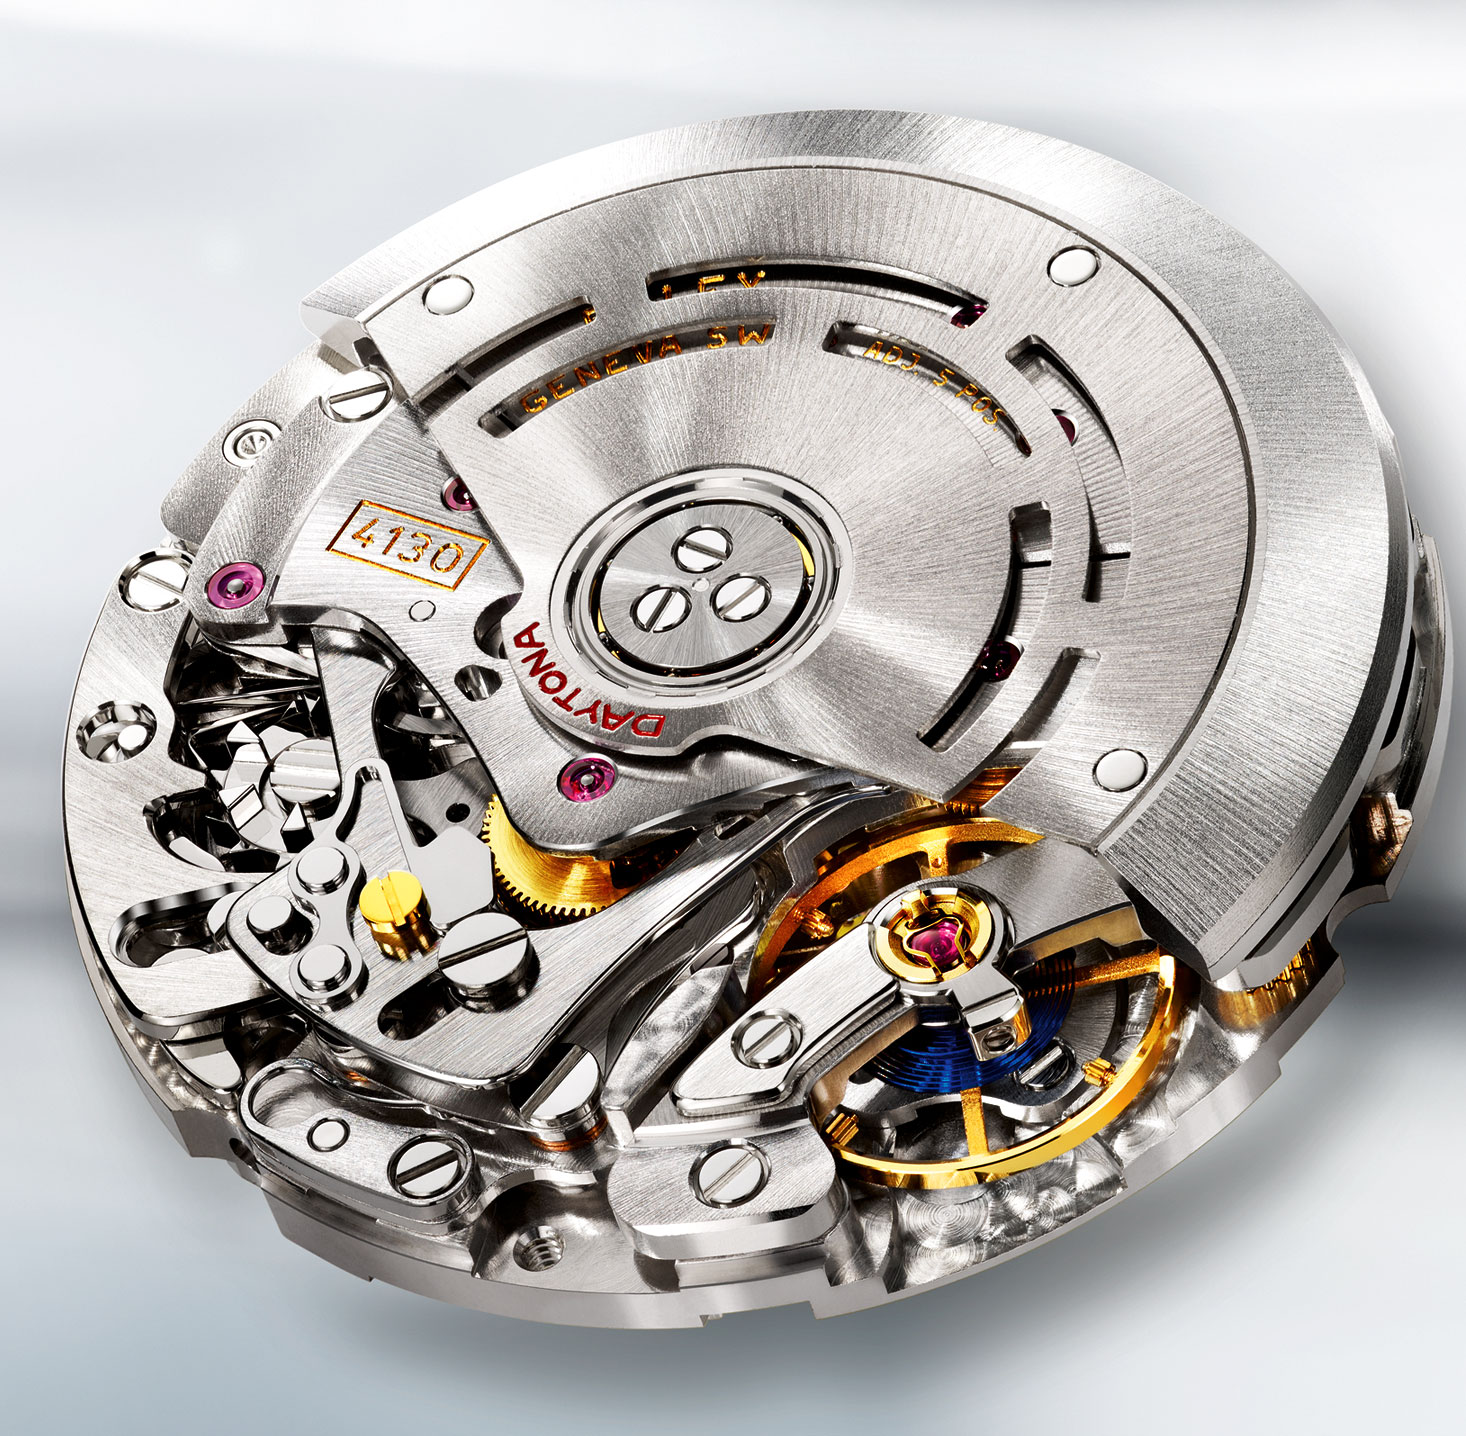 Rolex-Daytona-4130-Movement.jpg